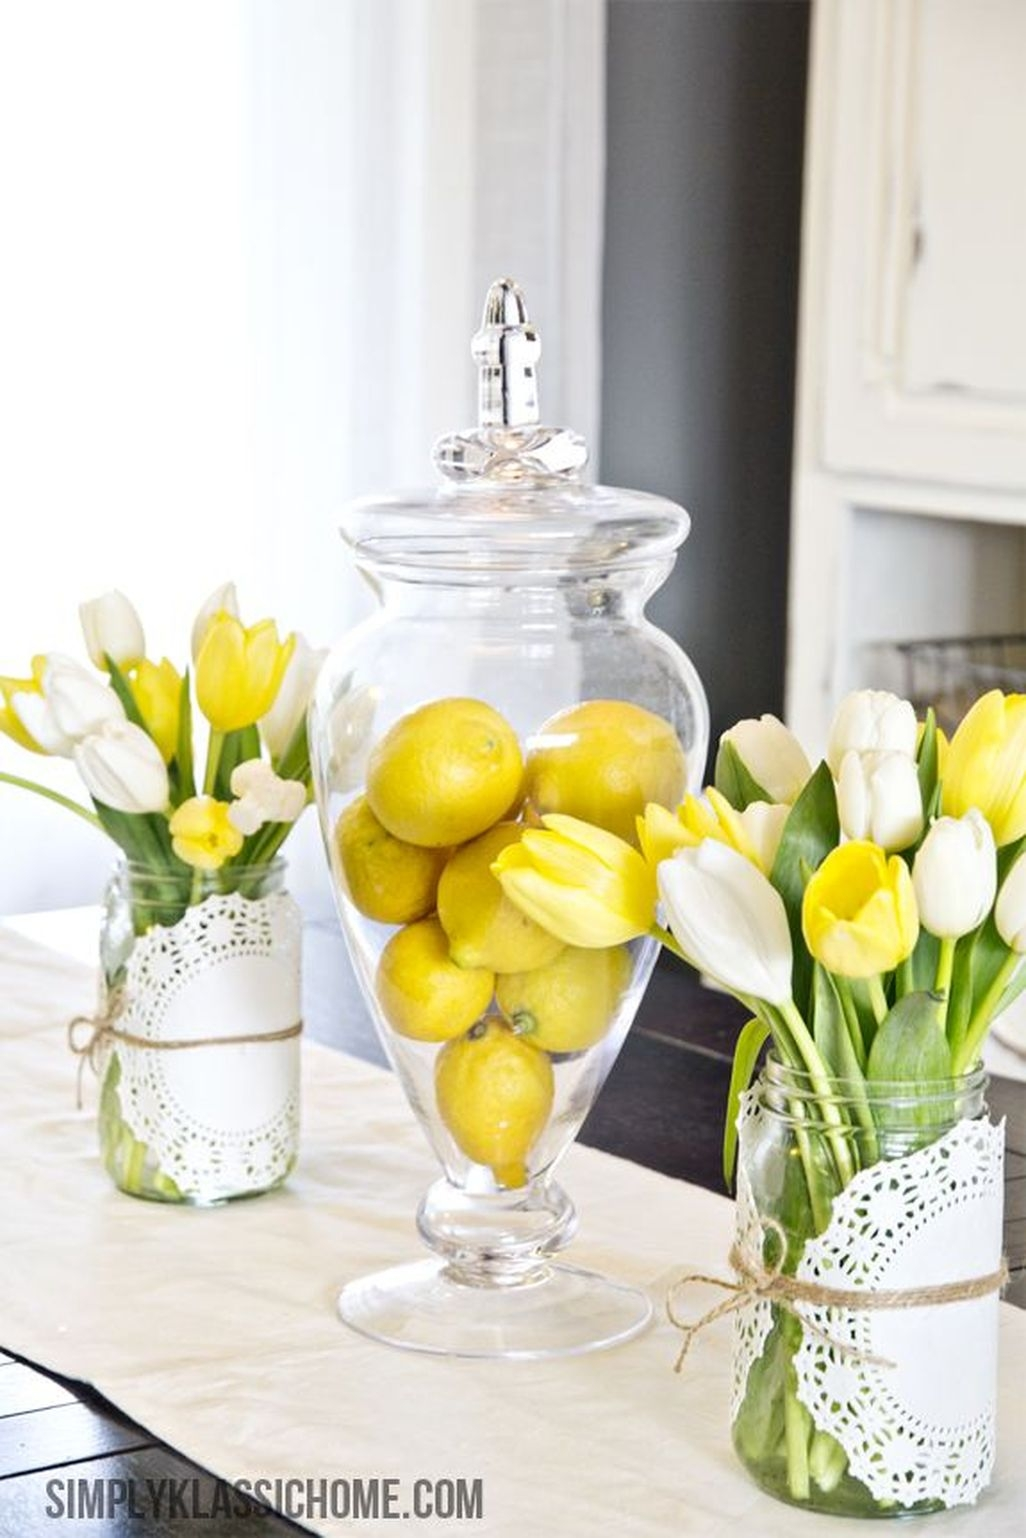 Easy Diy Spring And Summer Home Decor Ideas 23